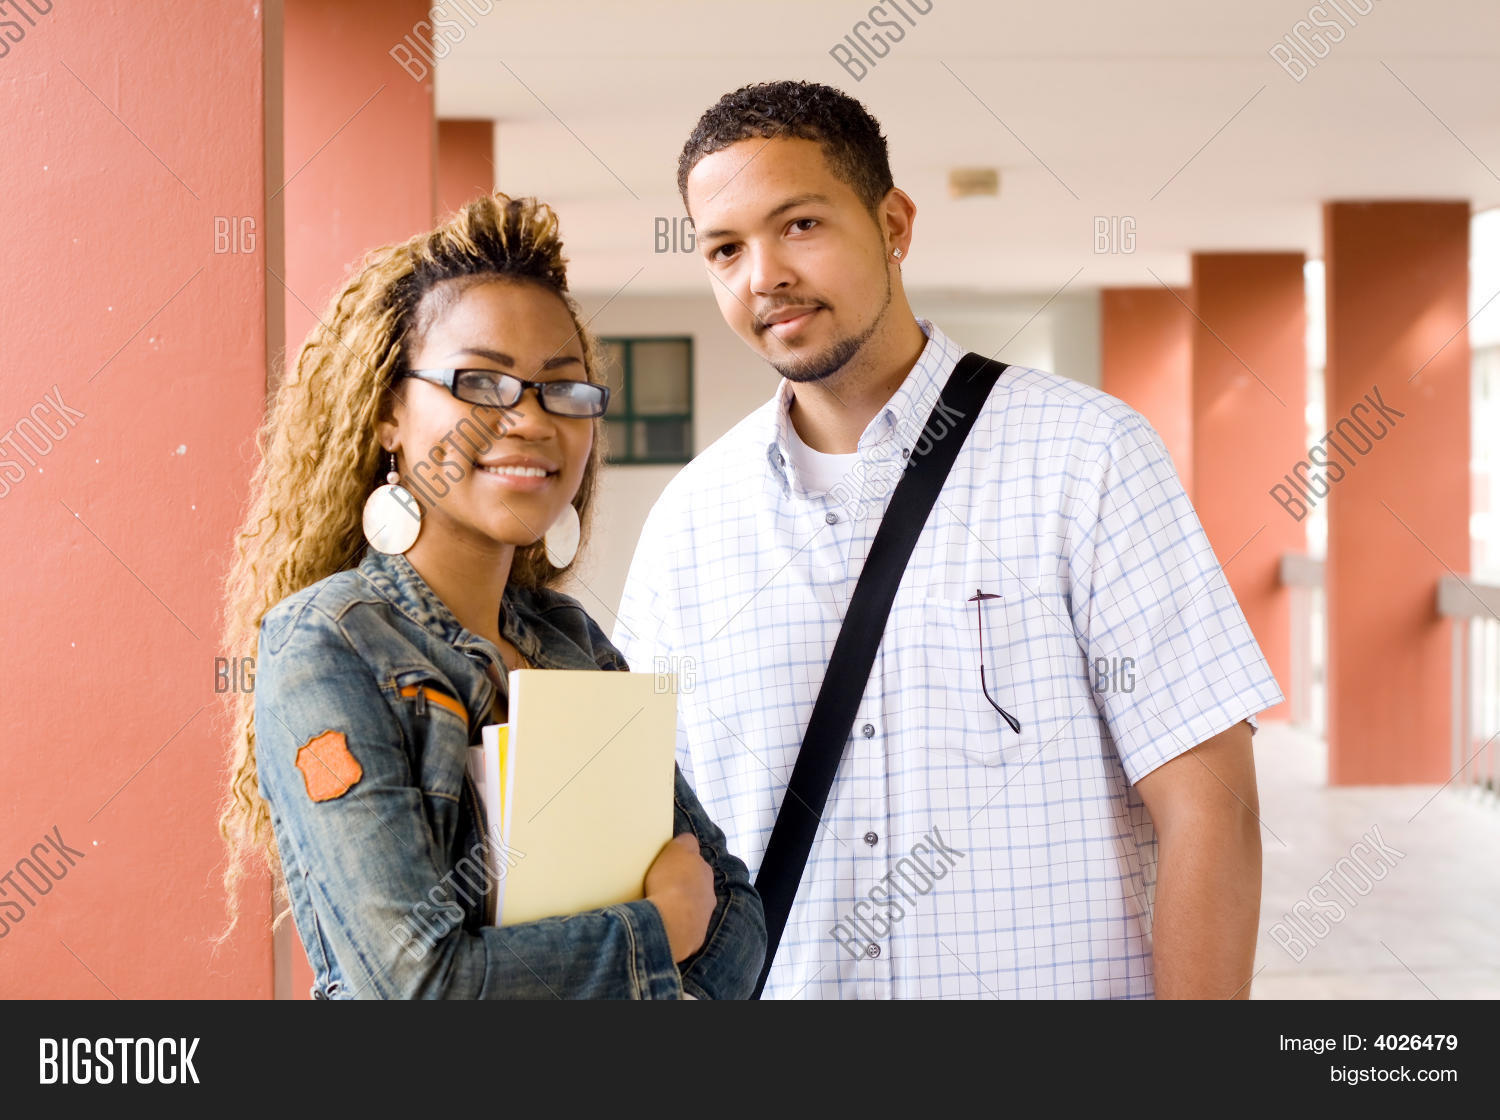 adult,africa,african,african american,african american couple,african american man,african american people,african american woman,african american women,american,attractive,beautiful,book,boy,boyfriend,bright,campus,casual,class,classmates,college,college student,college students,college students studying,confident,couple,diversity,education,female,friend,friendship,fun,girl,girlfriend,glasses,group,guy,happy,high-school,indoors,intelligent,learn,lifestyle,male,man,notebook,passage,people,portrait,pretty,school,smart,smile,south,standing,students,study,university,woman,young